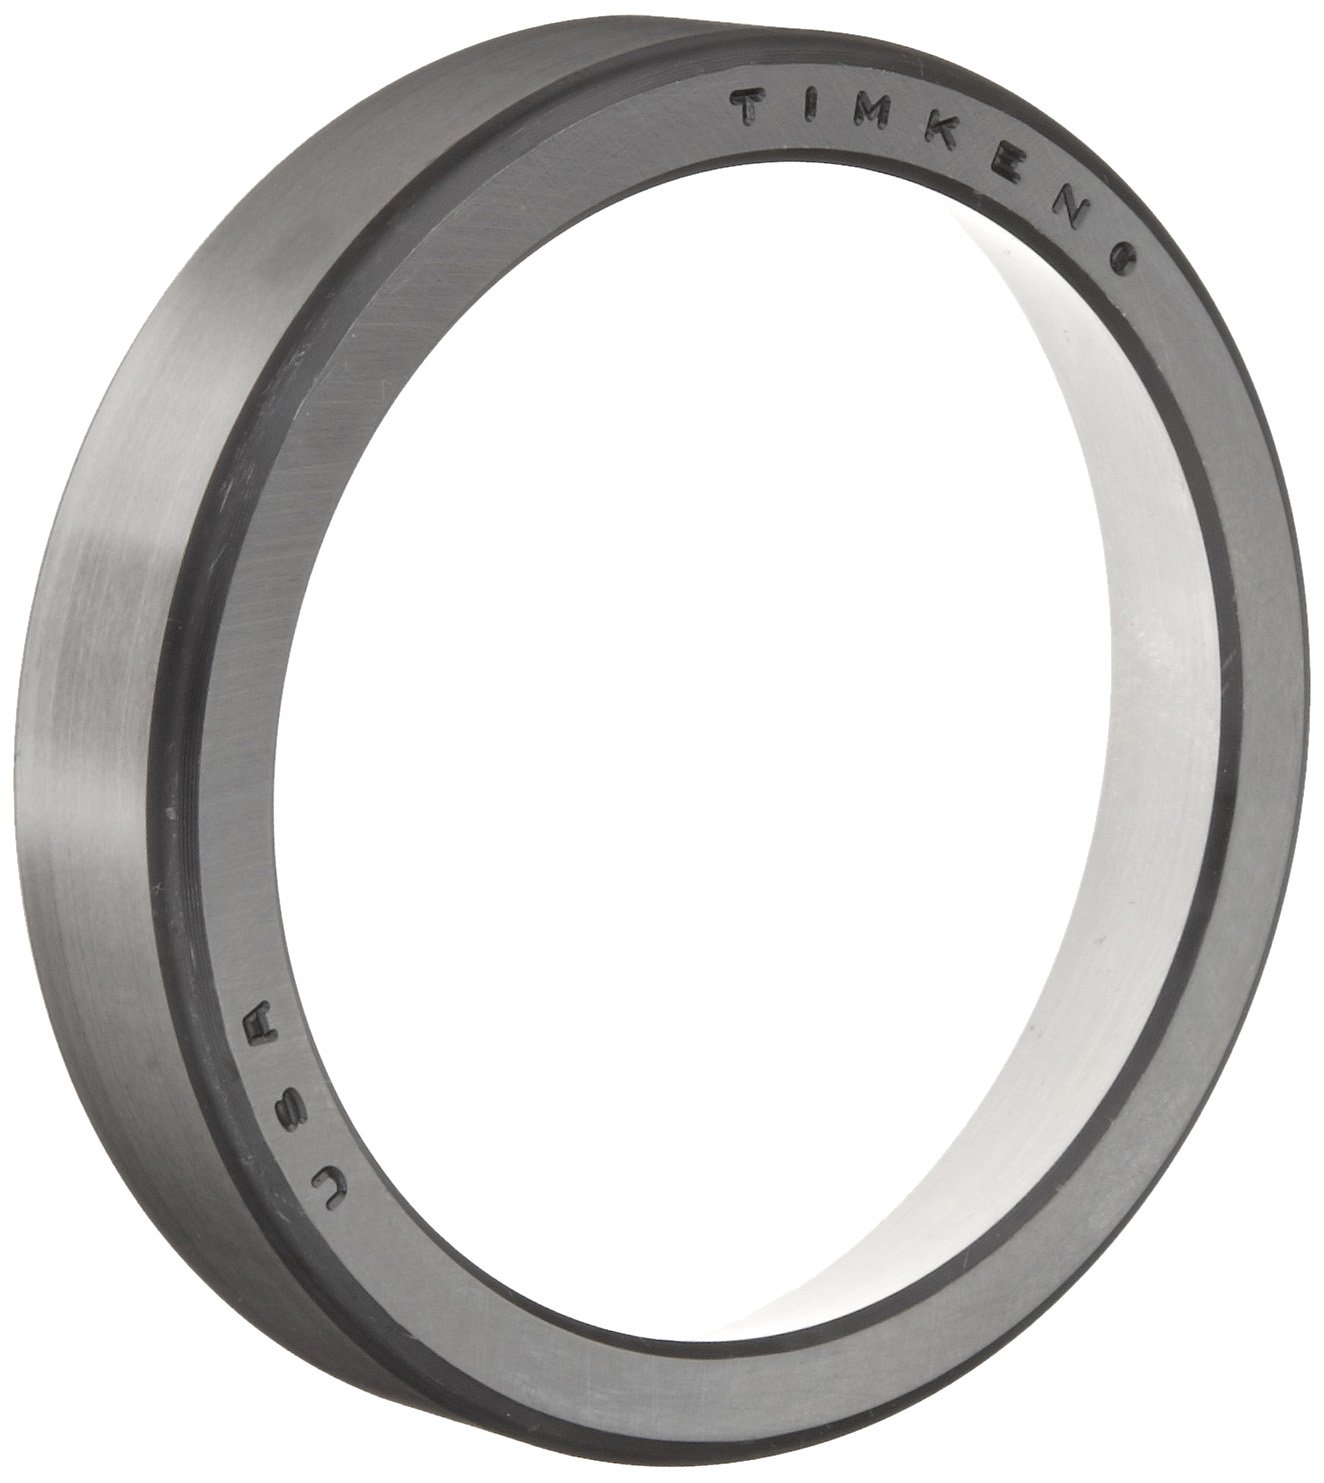 Timken 28300 Tapered Roller Bearing, Single Cup, Standard Tolerance, Straight Outside Diameter, Steel, Inch, 3.0000 Outside Diameter, 0.6105 Width timken 28300 tapered roller bearing single cup standard tolerance straight outside diameter steel inch 3 0000 outside diameter 0 6105 width